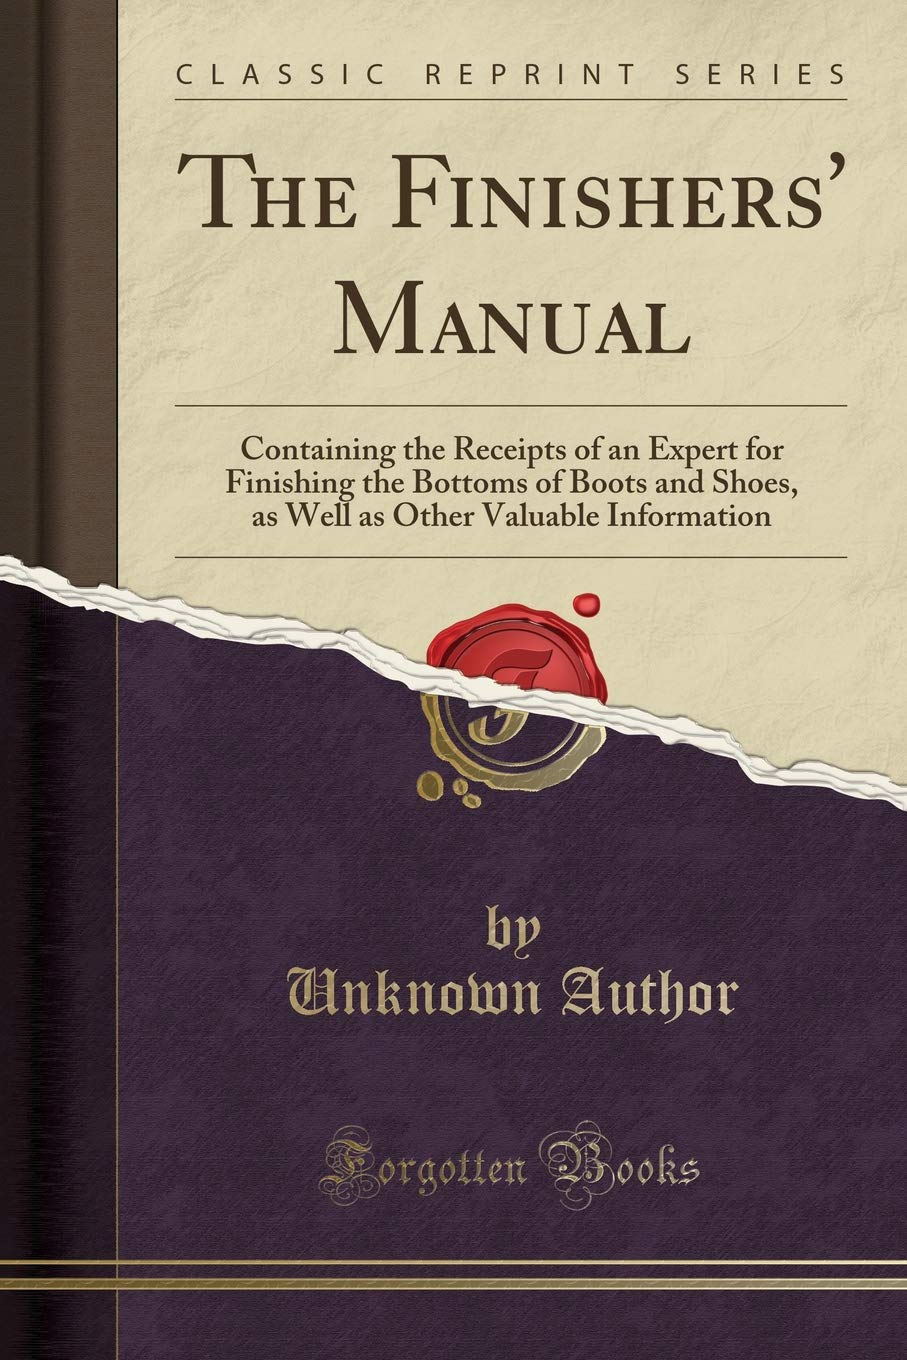 The Finishers' Manual: Containing the Receipts of an Expert for Finishing the Bottoms of Boots and Shoes, as Well as Other Valuable Information (Classic Reprint) ebook